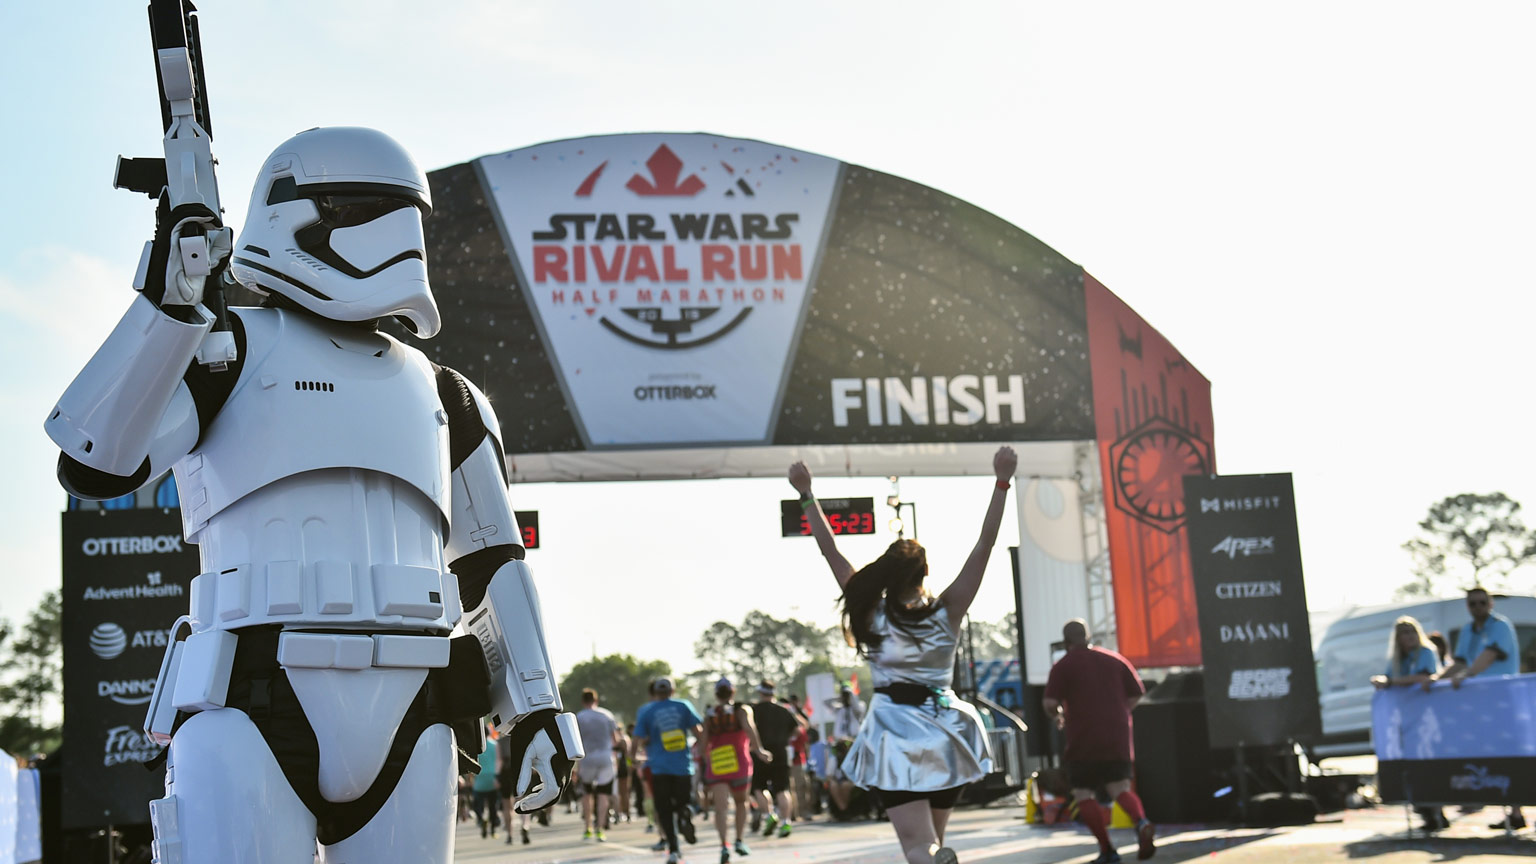 A stormtrooper stands by the runDisney Star Wars Rival Run finish line